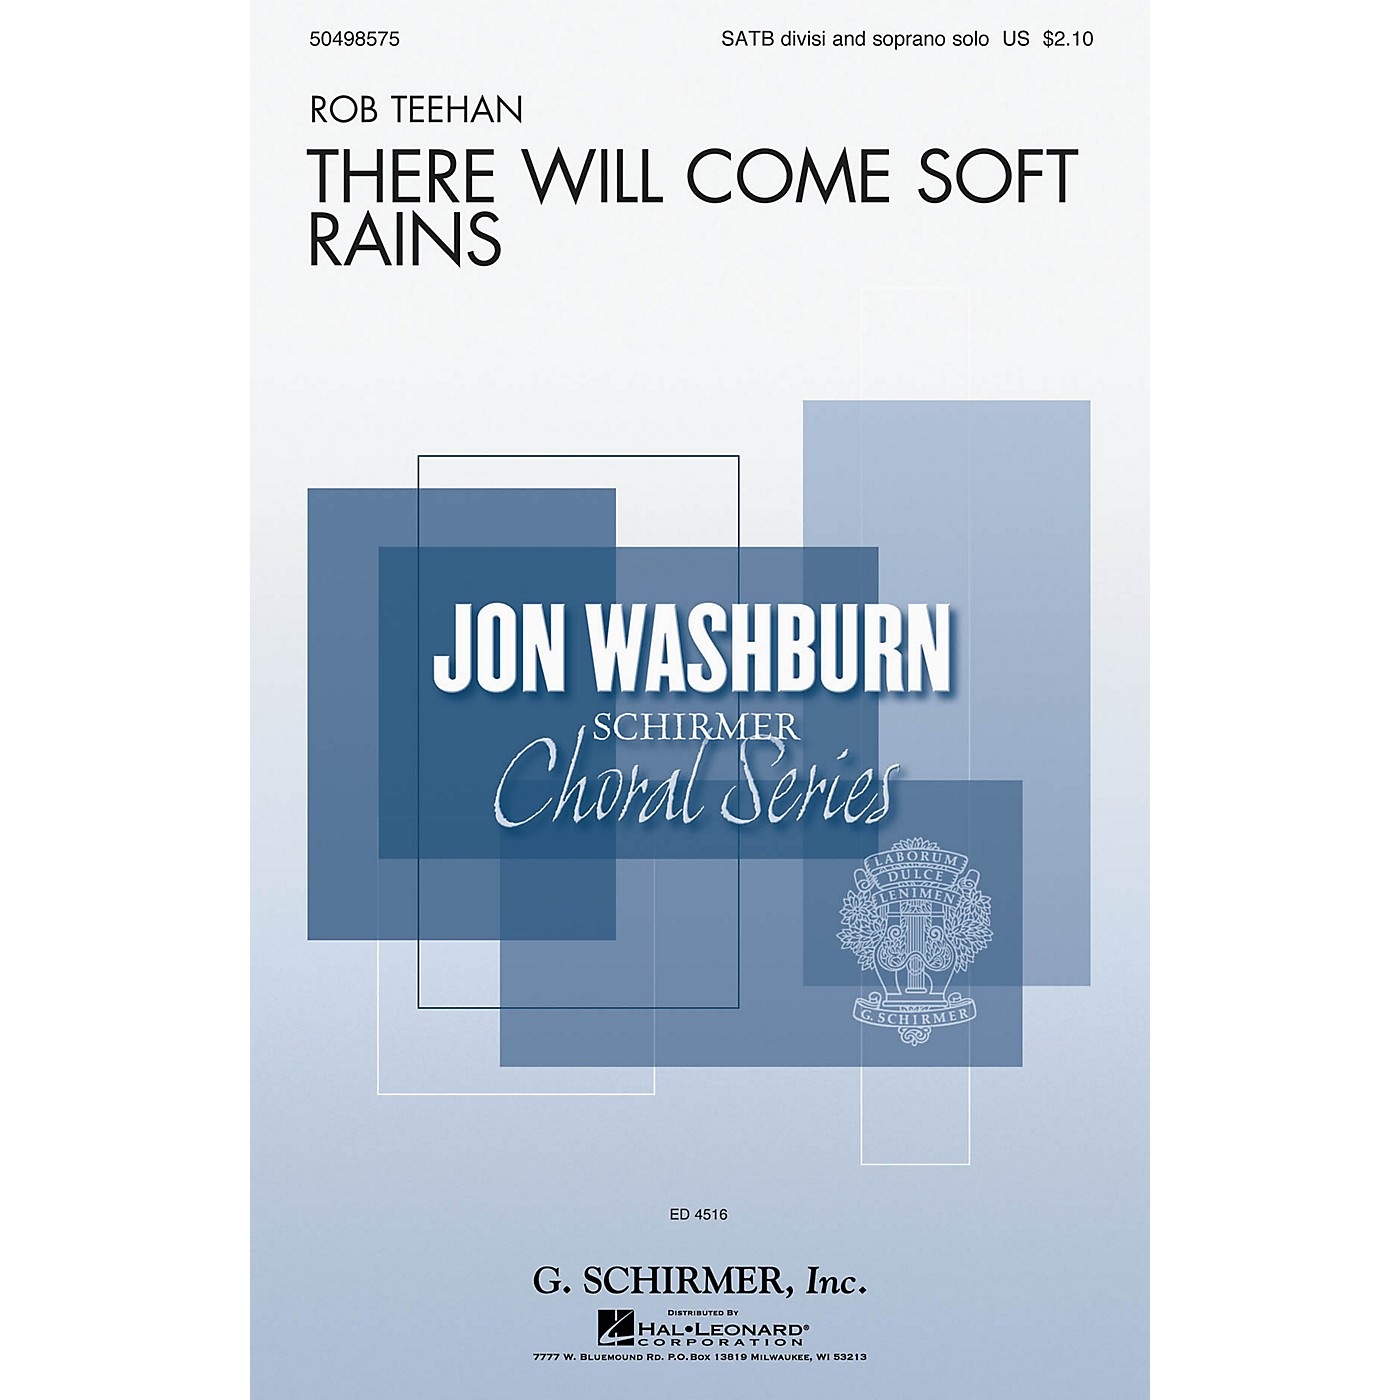 G. Schirmer There Will Come Soft Rains (Jon Washburn Choral Series) SATB Divisi composed by Rob Teehan thumbnail